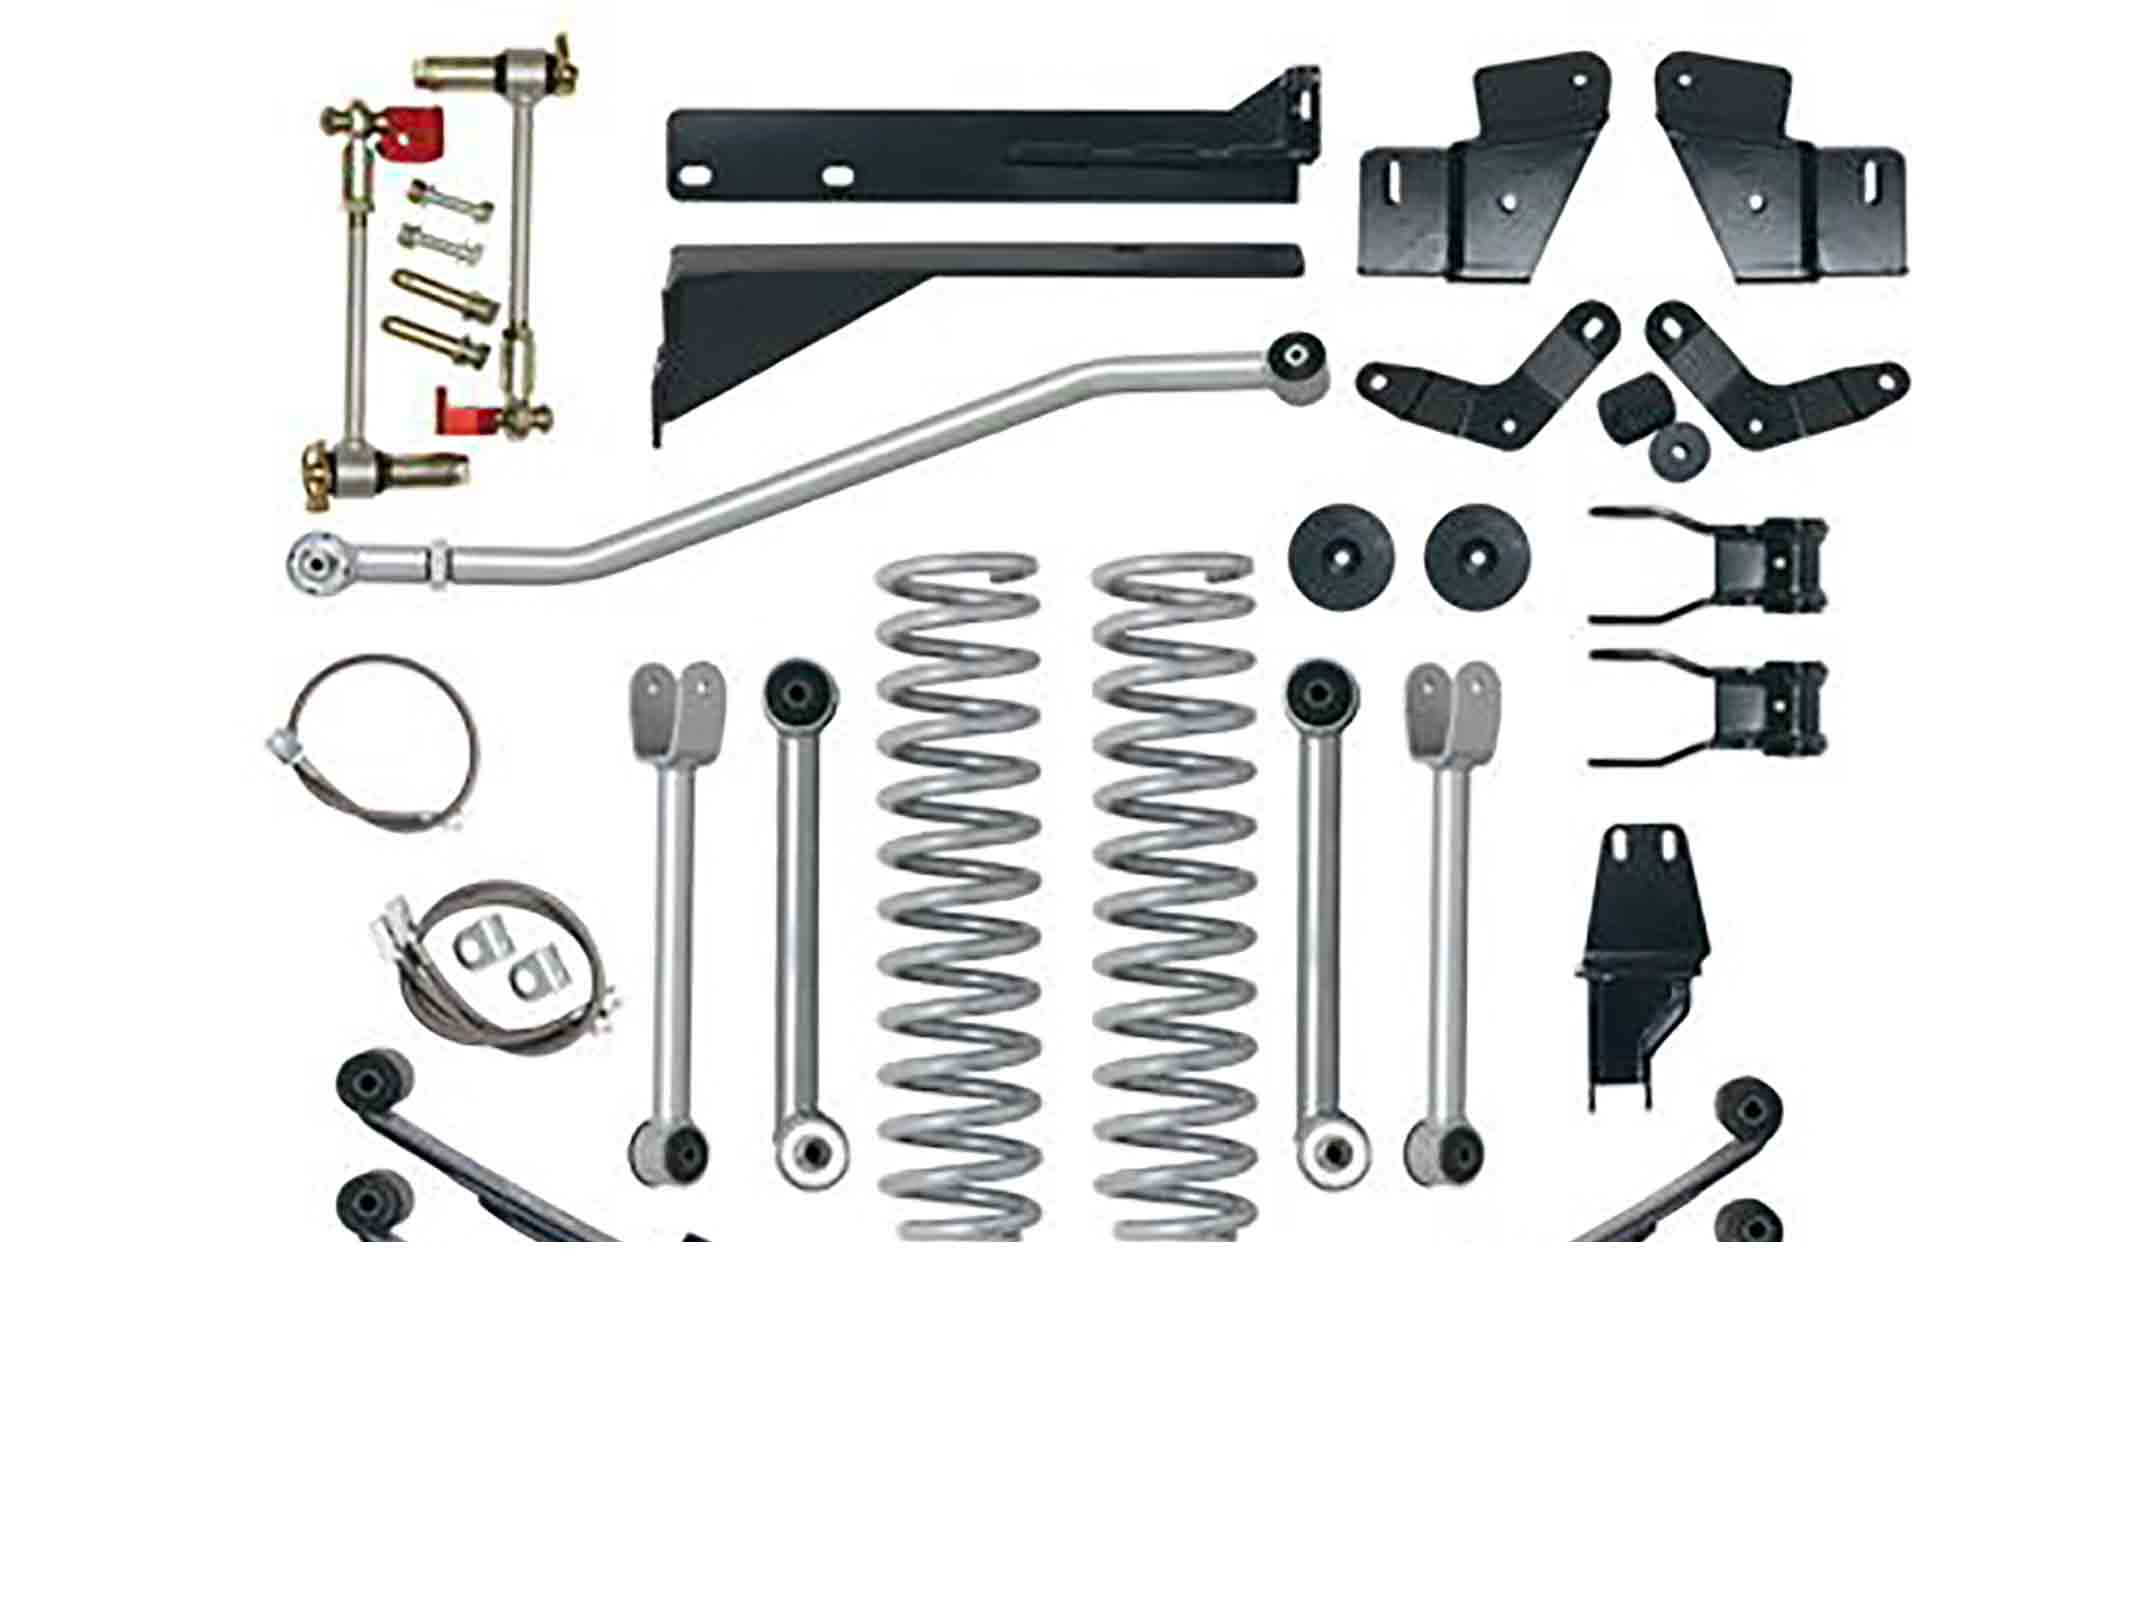 Super flex short arm kit cherokee xj 84 01  + 5,5 = 140mm ricambi jeep